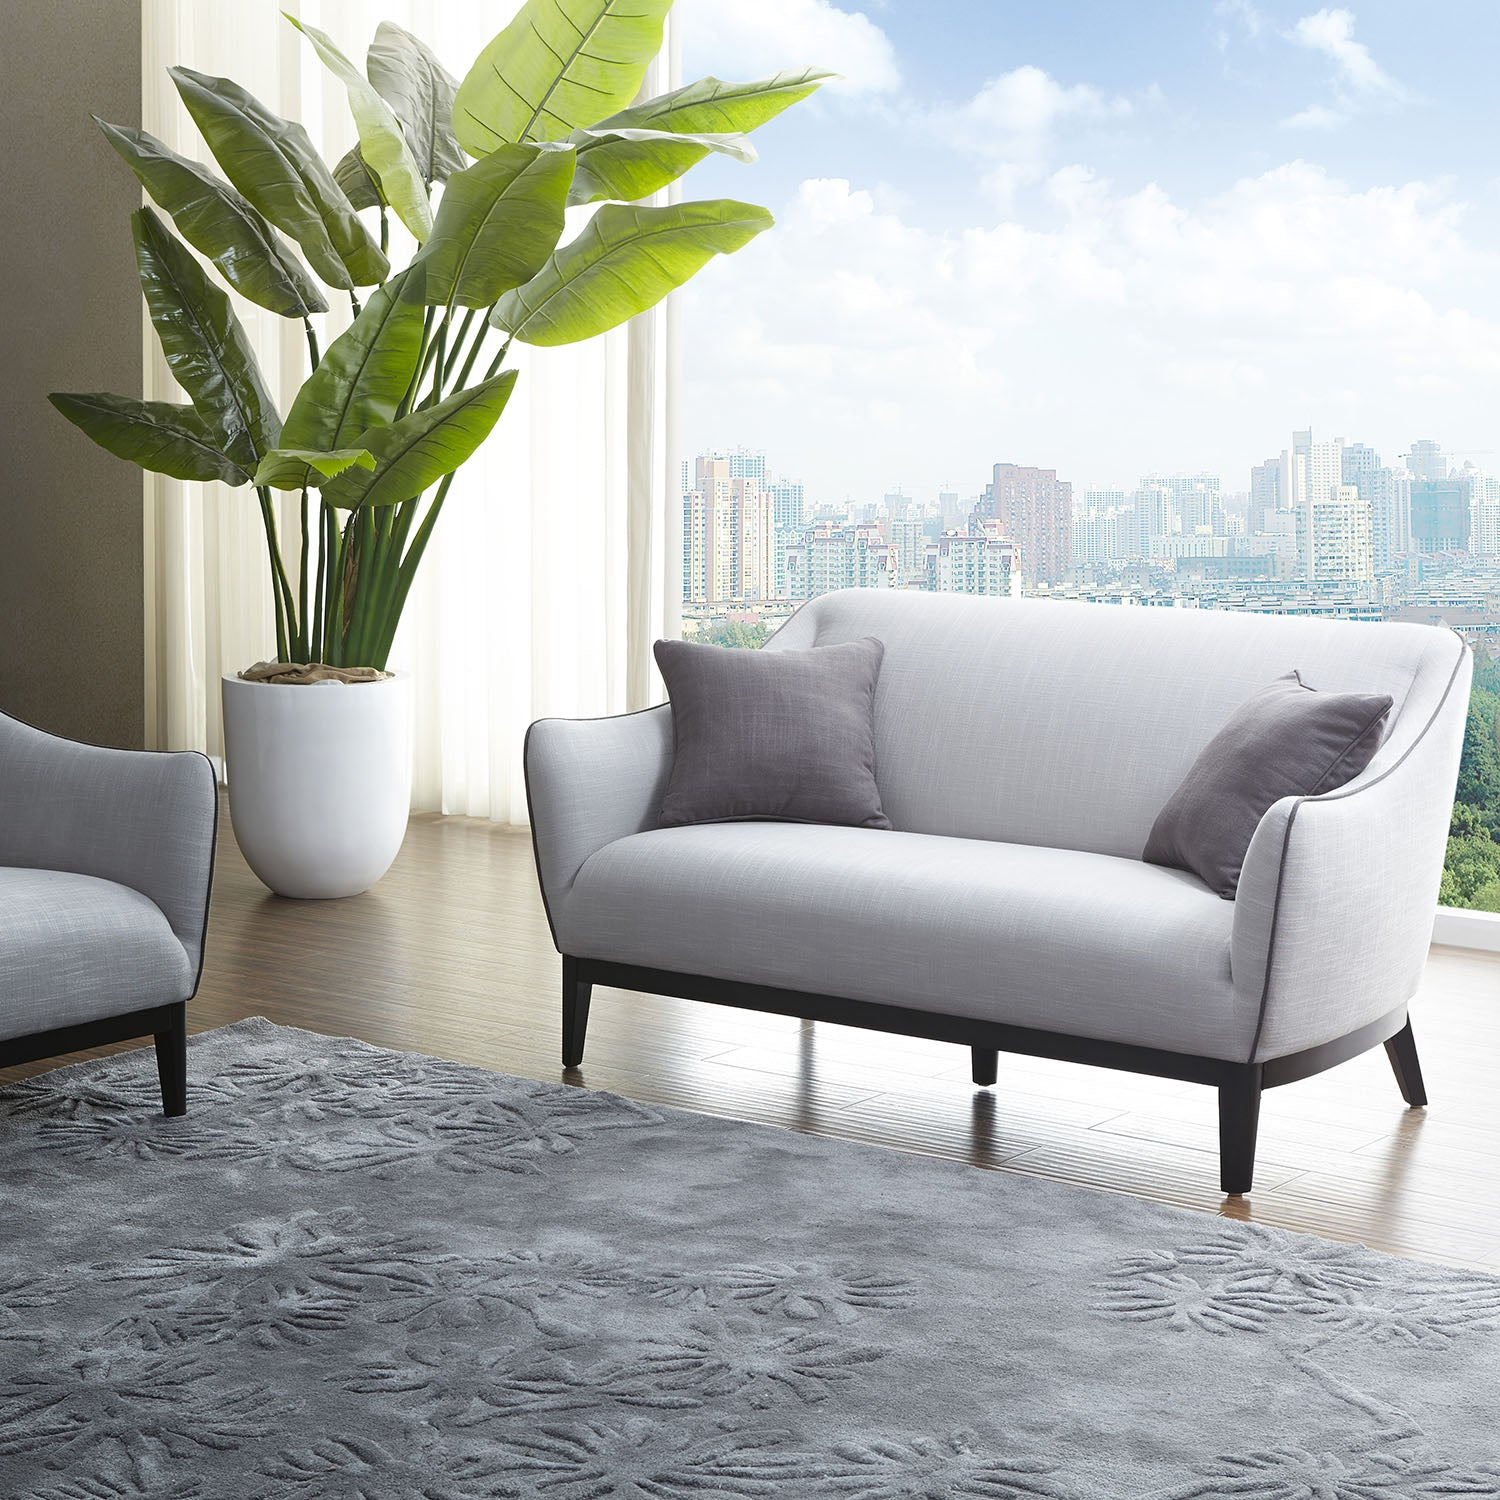 KUKA #2556 Leather/Fabric Sofa (1/2/3-Seater, Chaise Lounge) - Picket&Rail Singapore's Premium Furniture Retailer